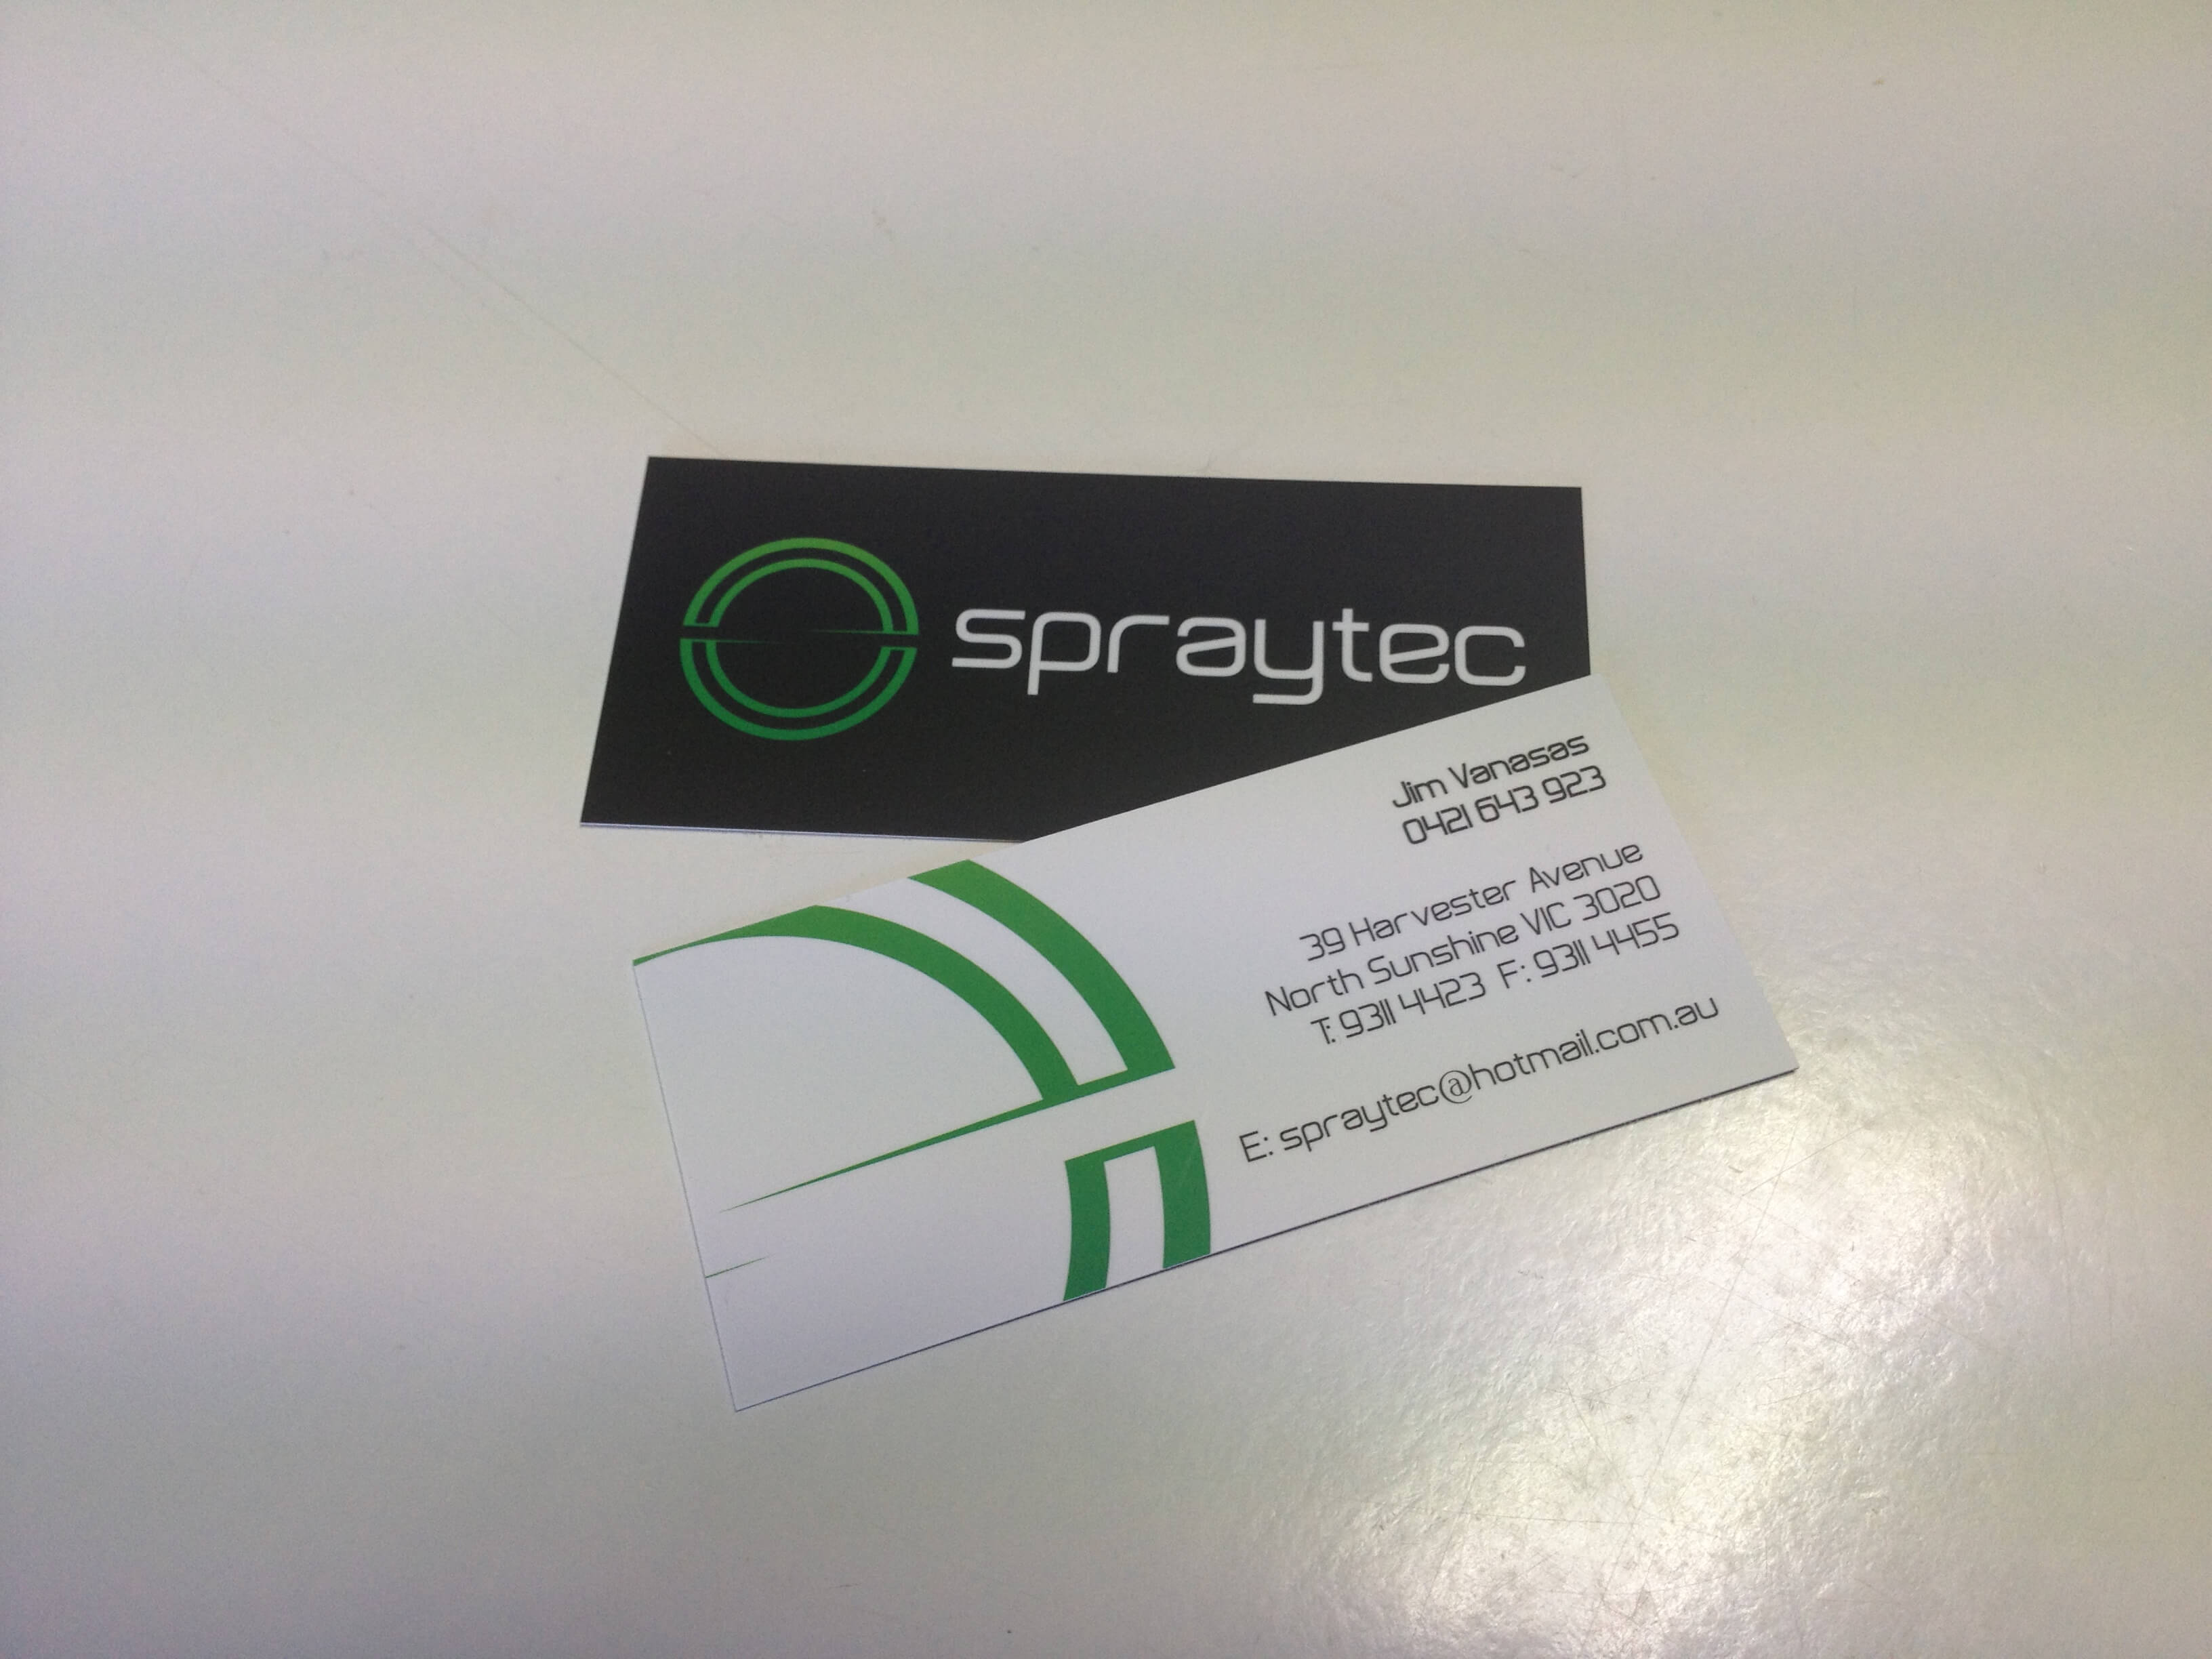 Spraytec Business Cards